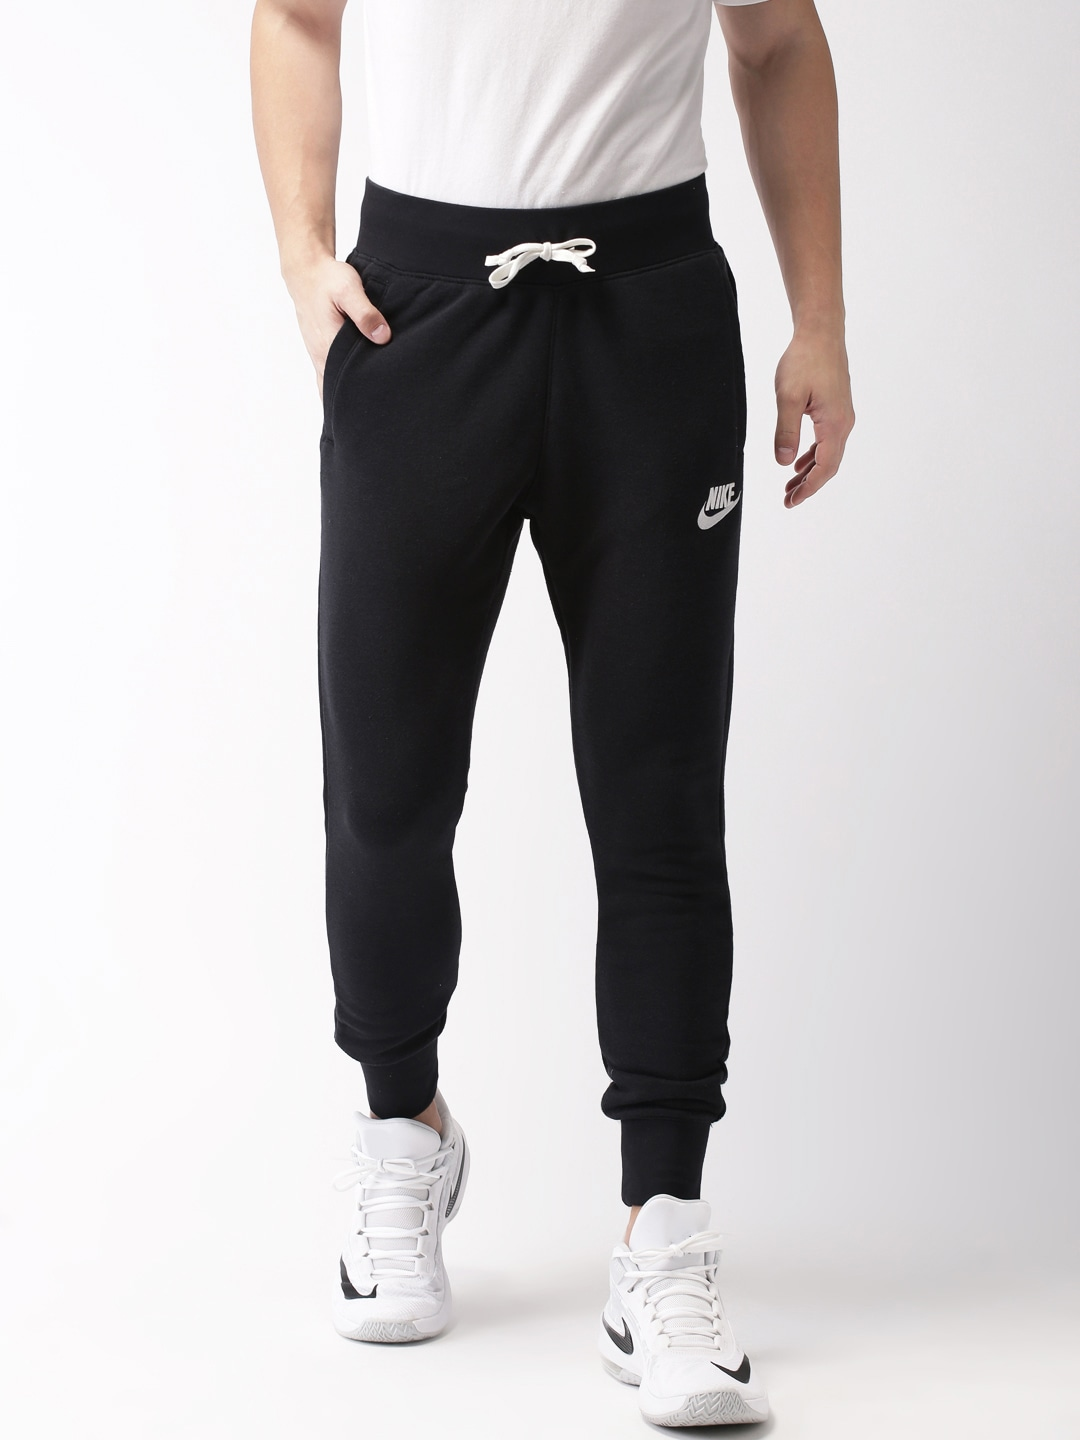 4f4763a9b6ef Nike Joggers - Buy Nike Joggers online in India